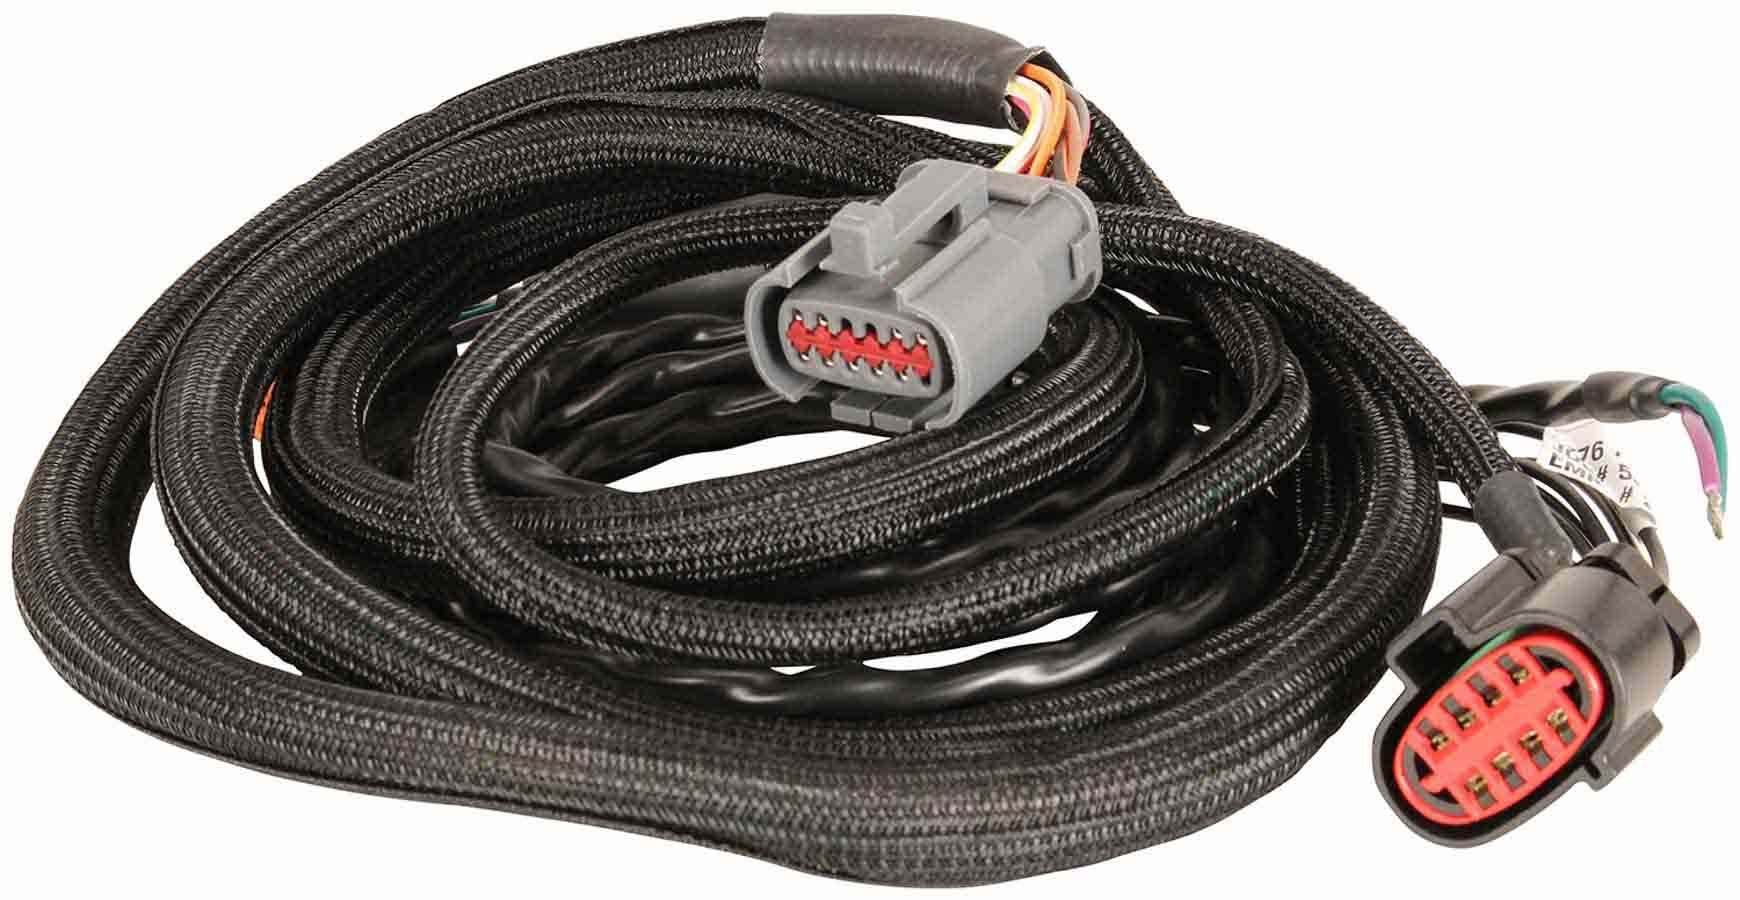 Msd Ignition Wire Harness Ford - E40D 89-94